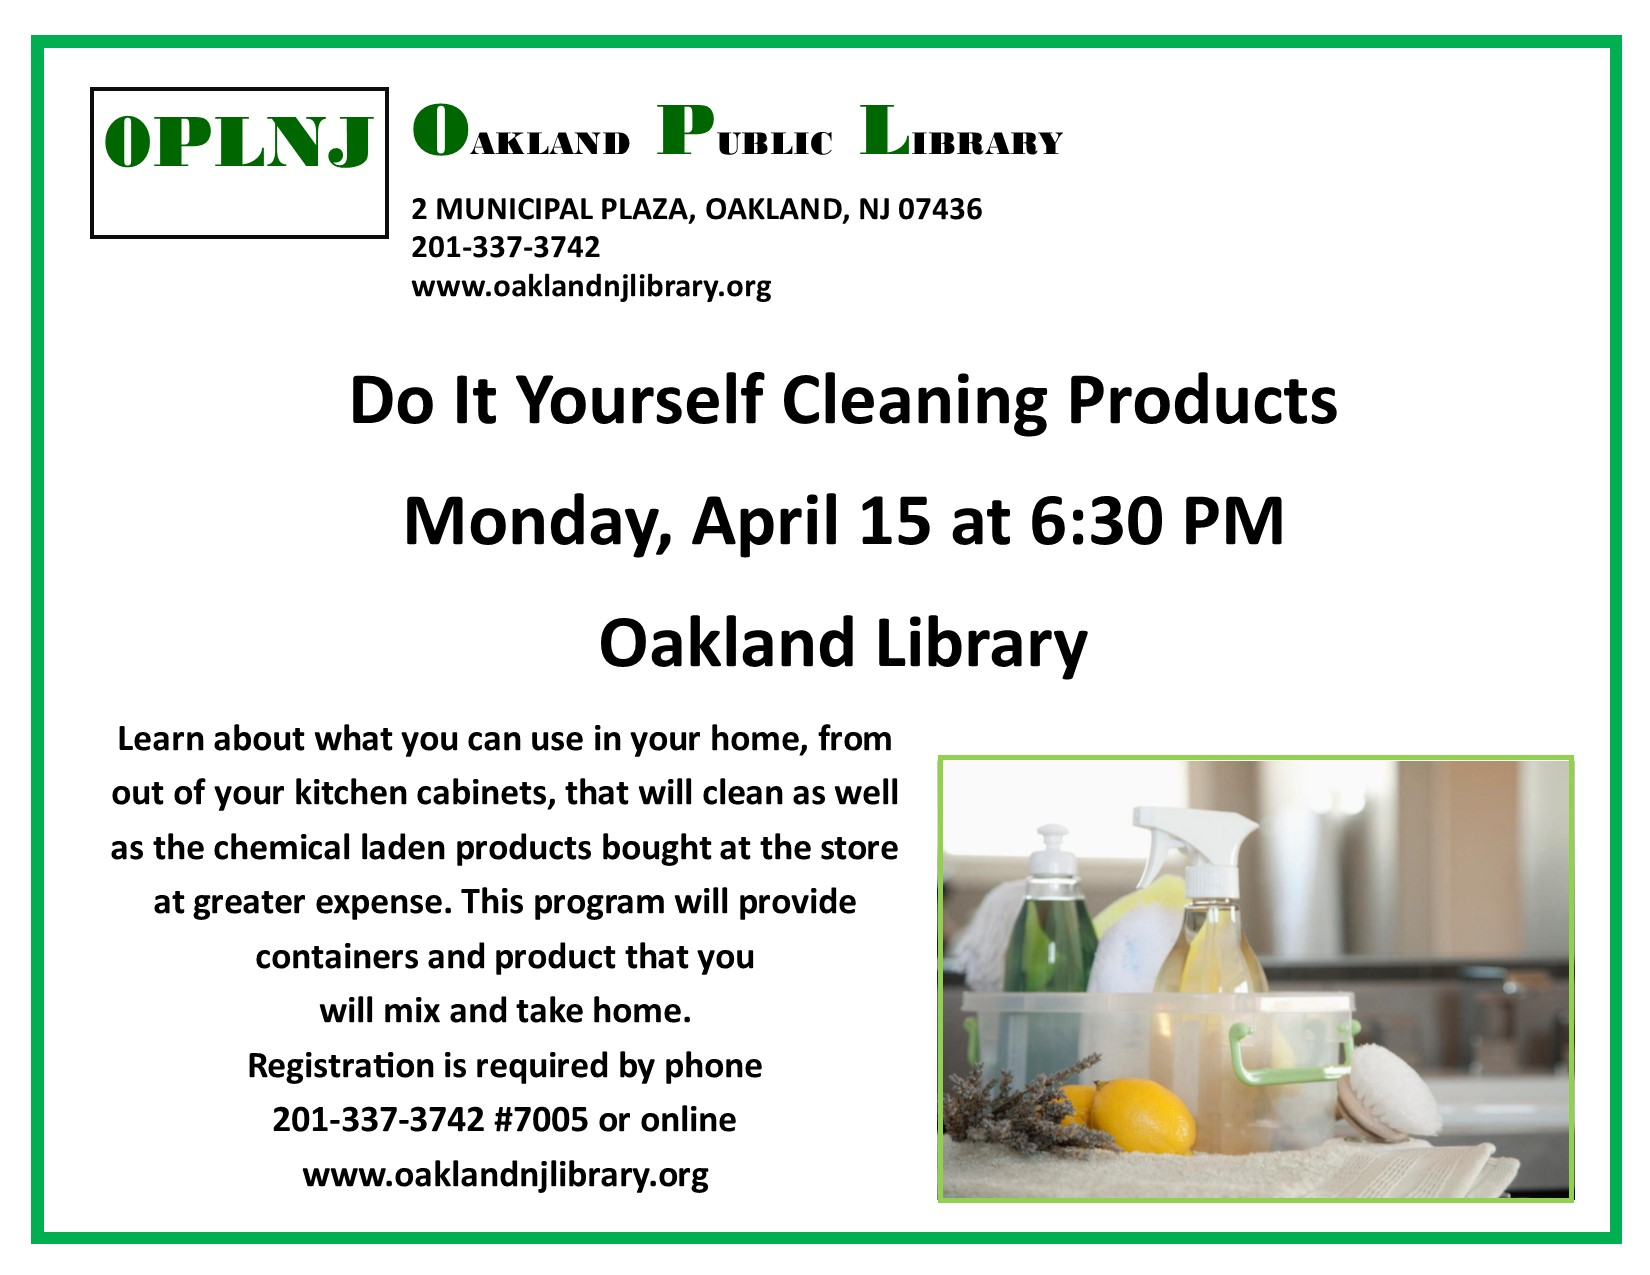 Do It Yourself Cleaning Products